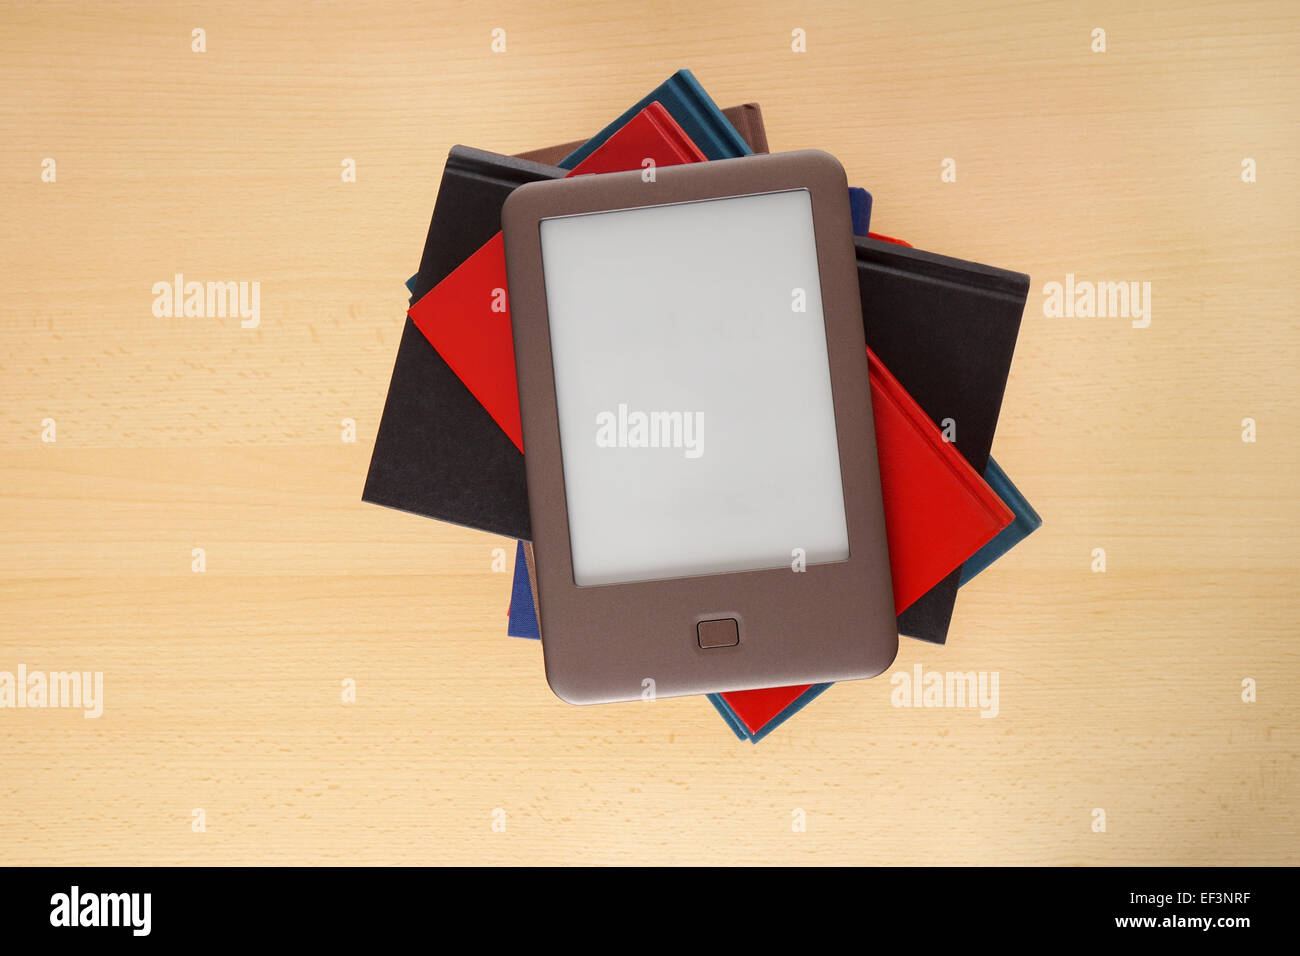 Ebook Reader on pile of books Photo Stock